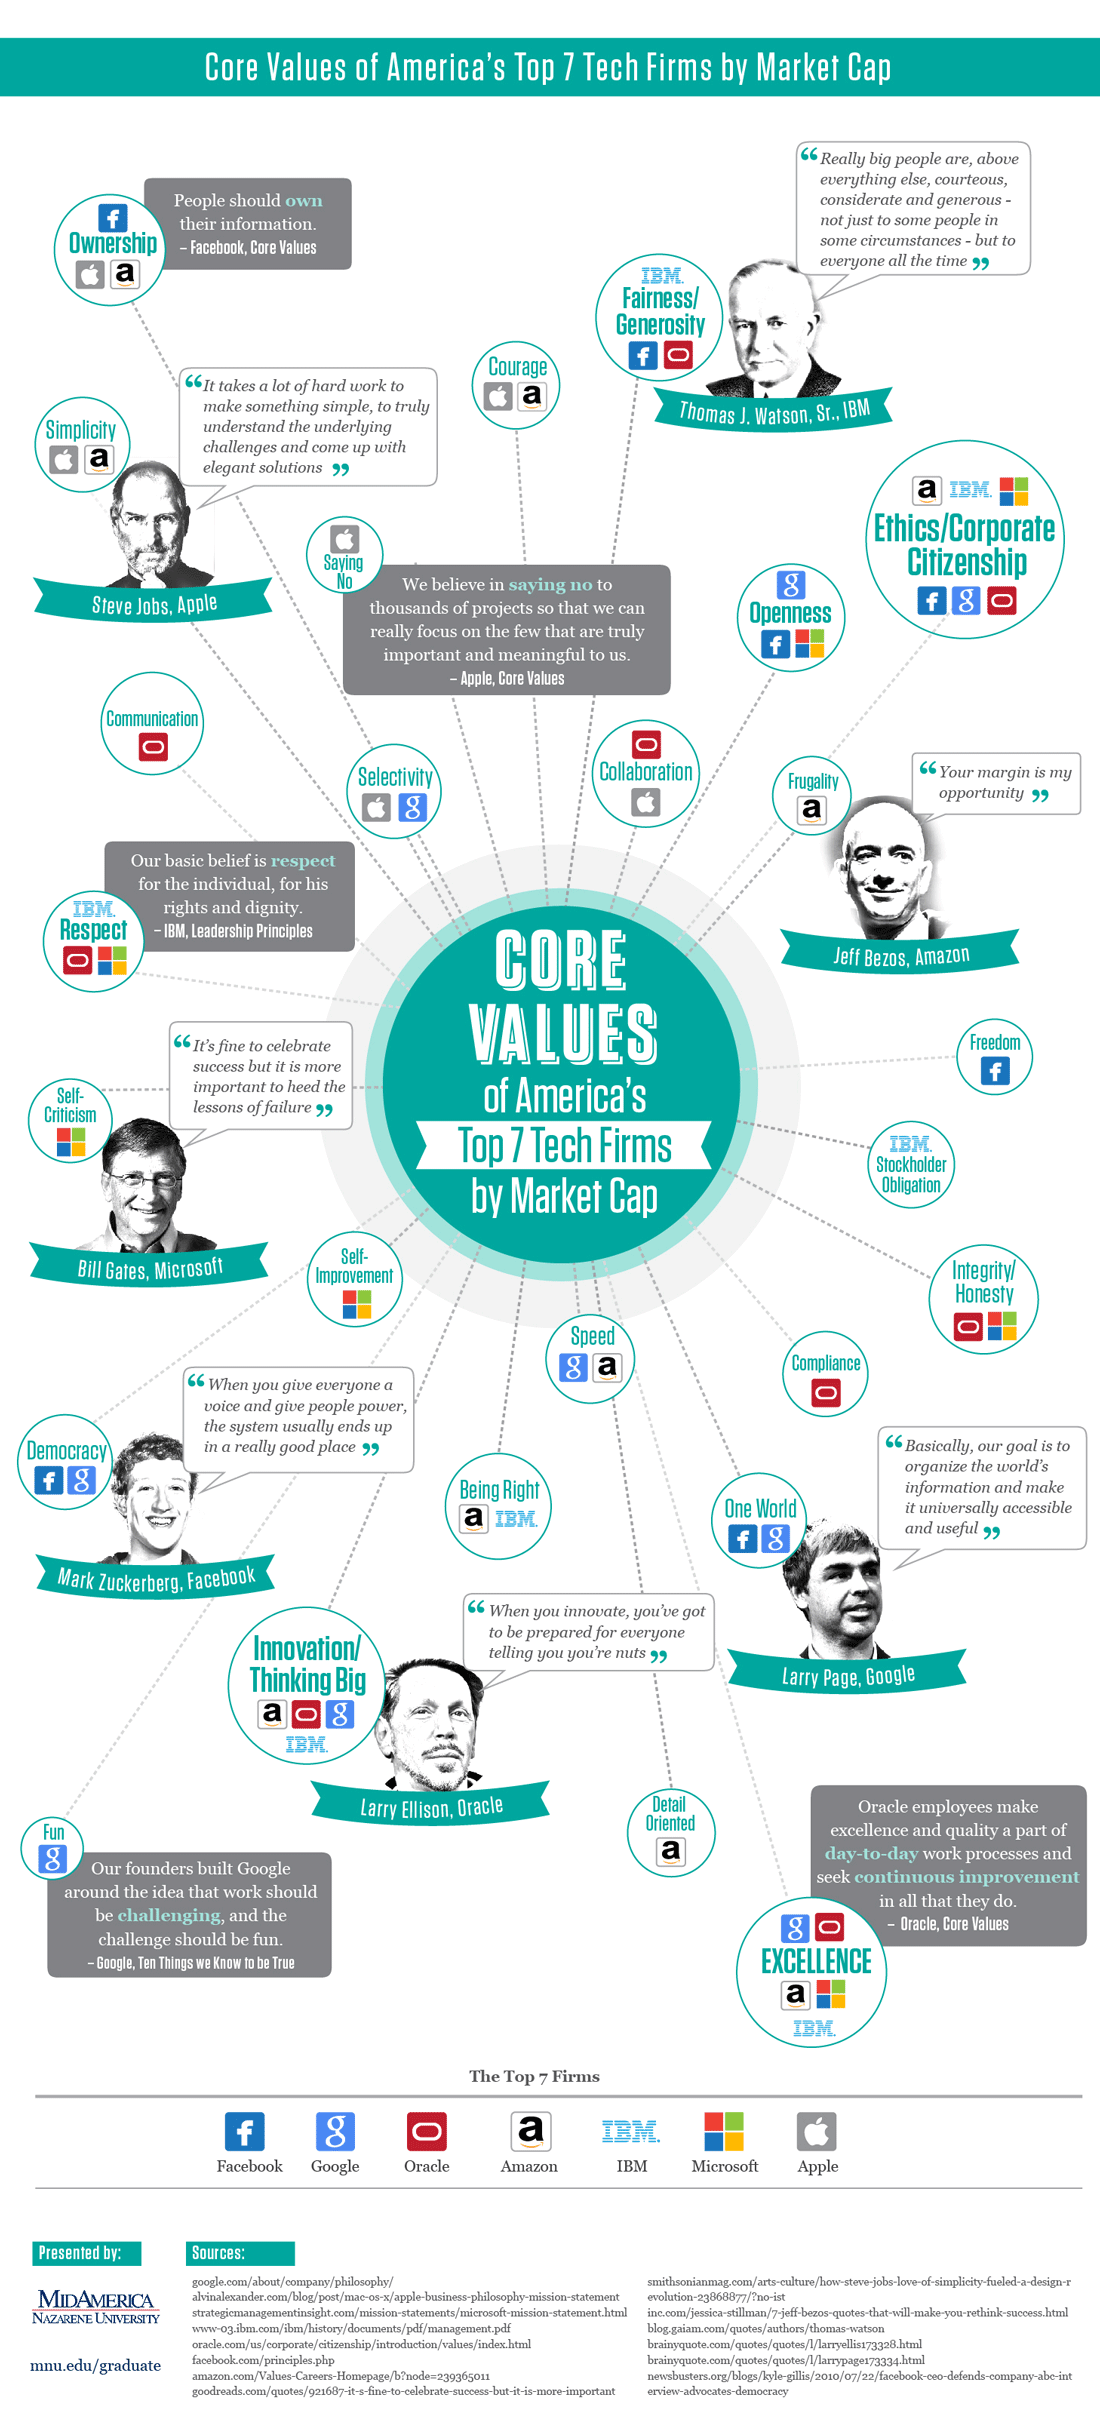 Core Values Of Top Tech Firms An Infographic The